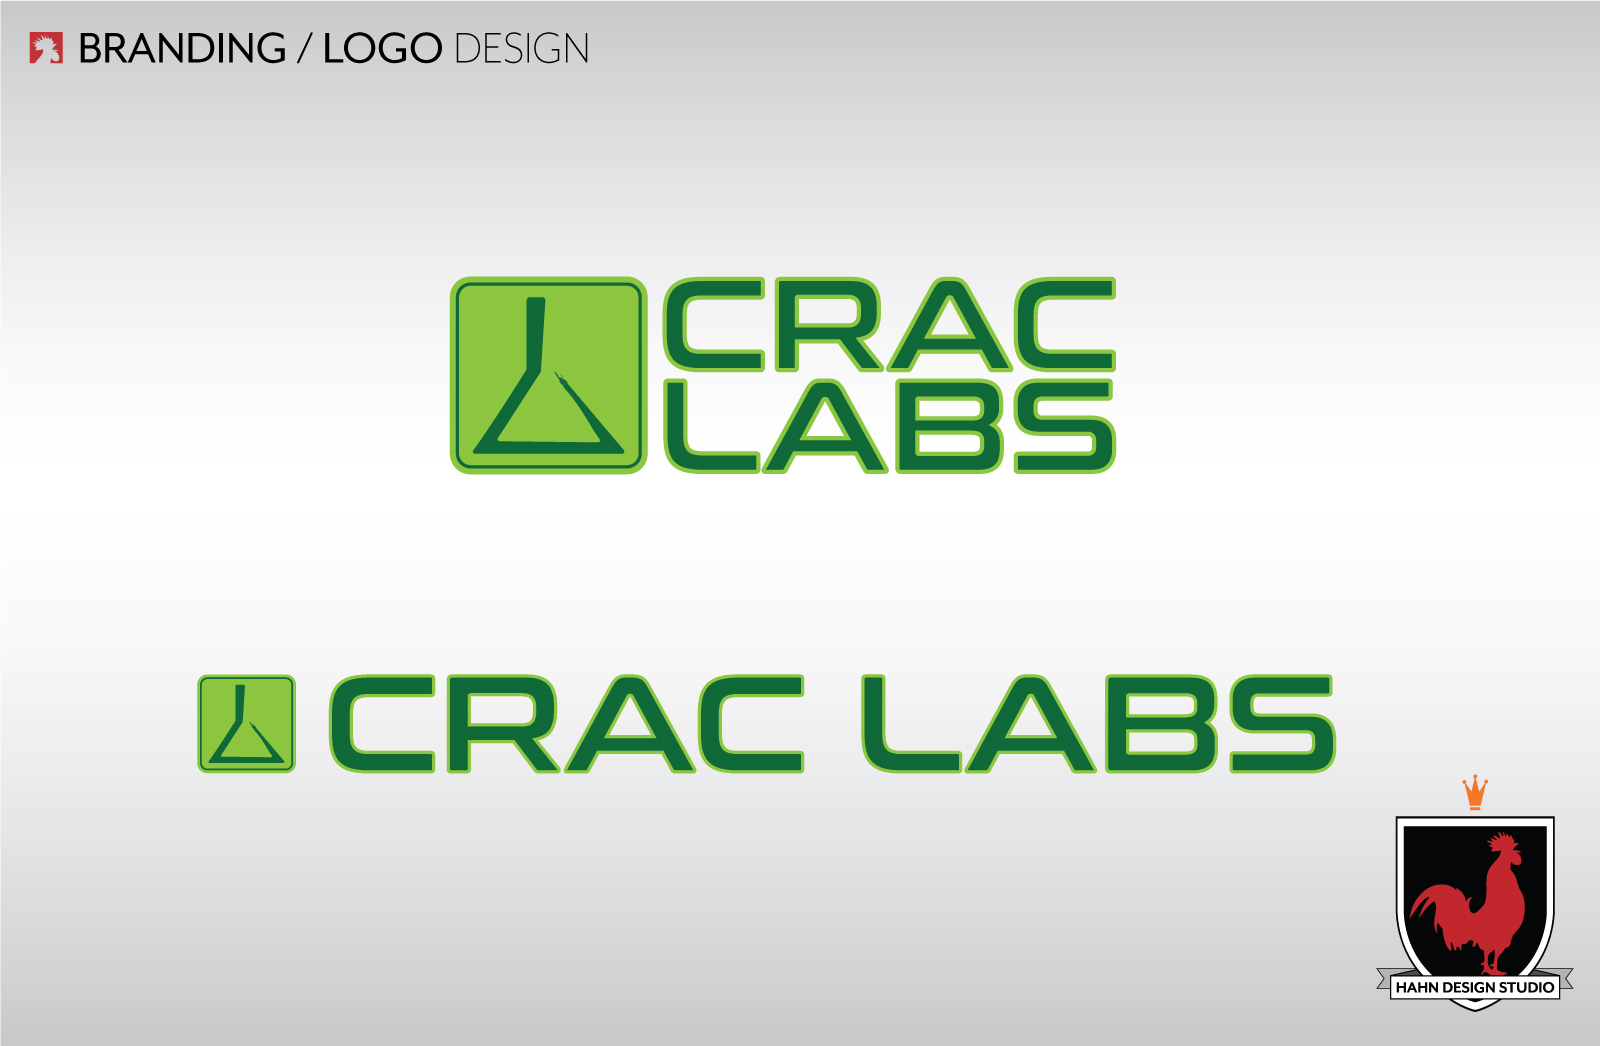 Branding Design for CRAC Labes